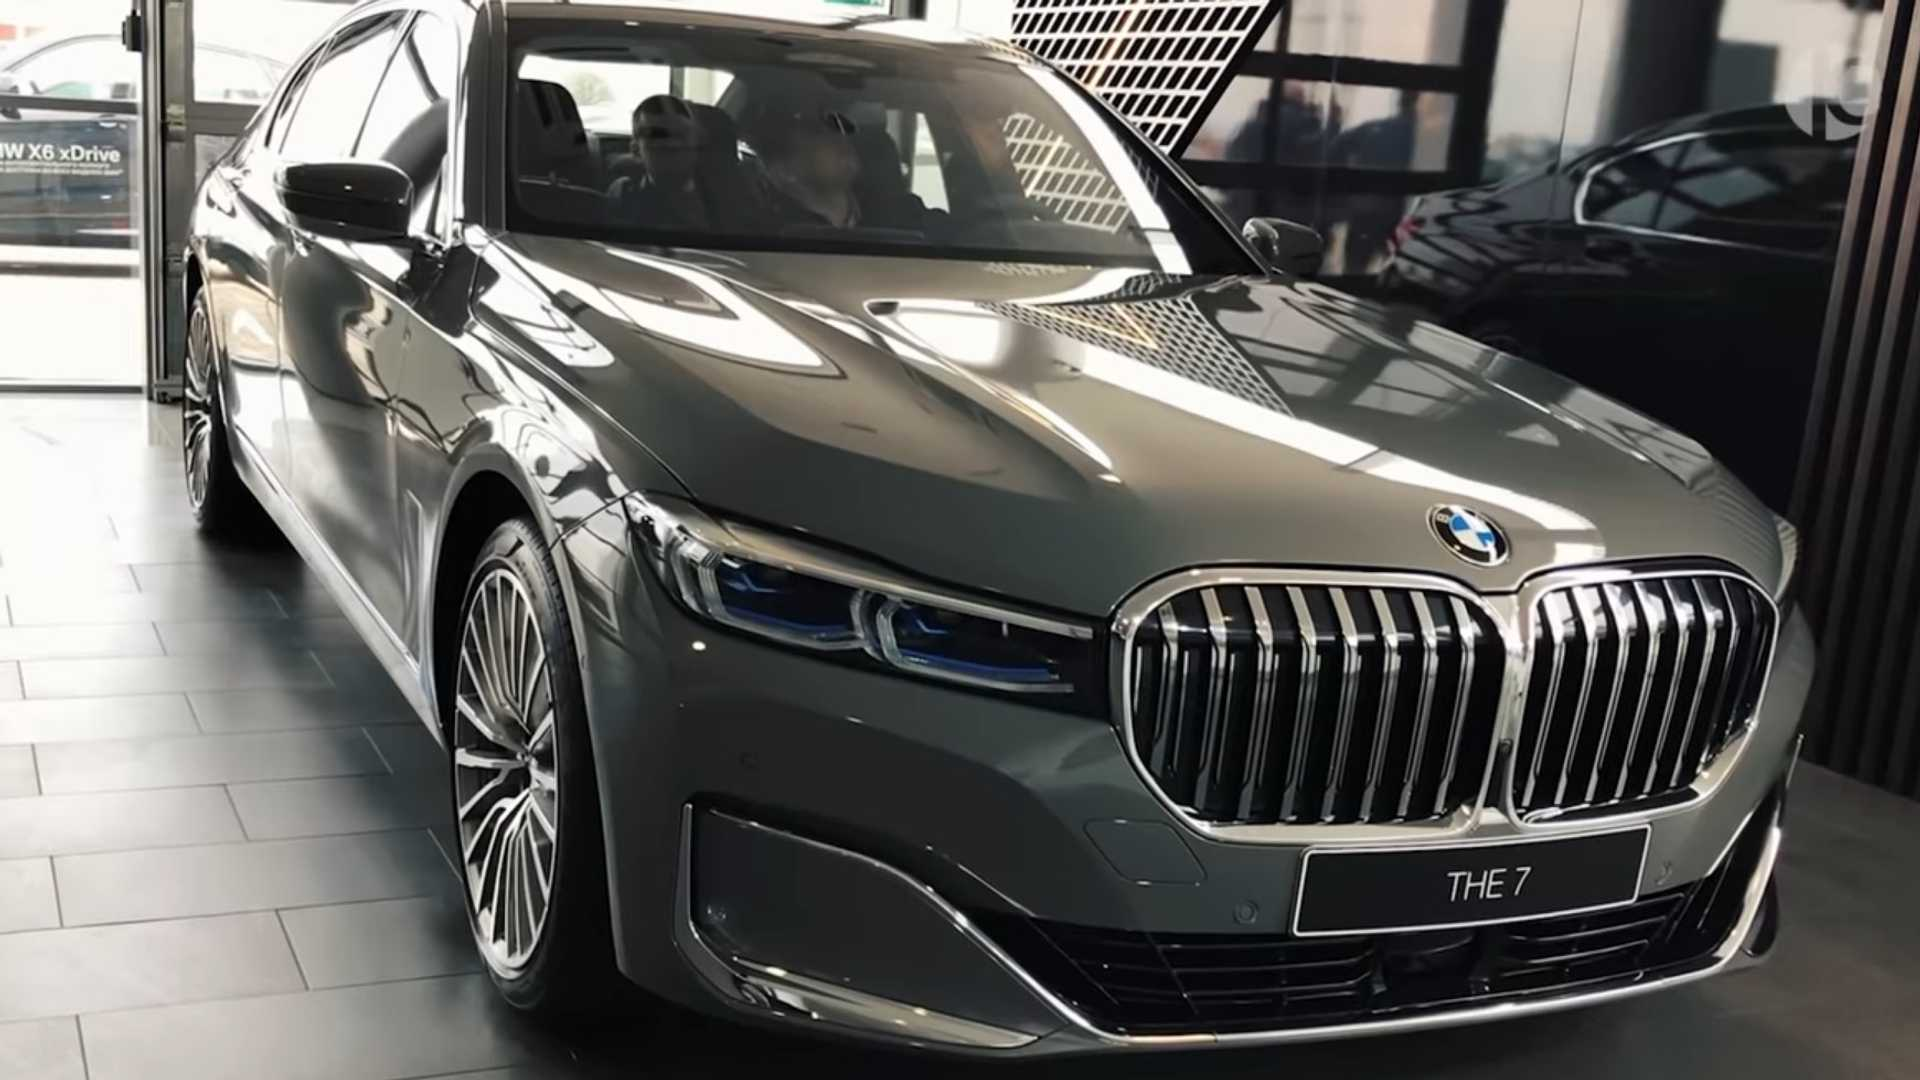 2020 BMW 7 Series Looks Stylish In A Walkaround Video